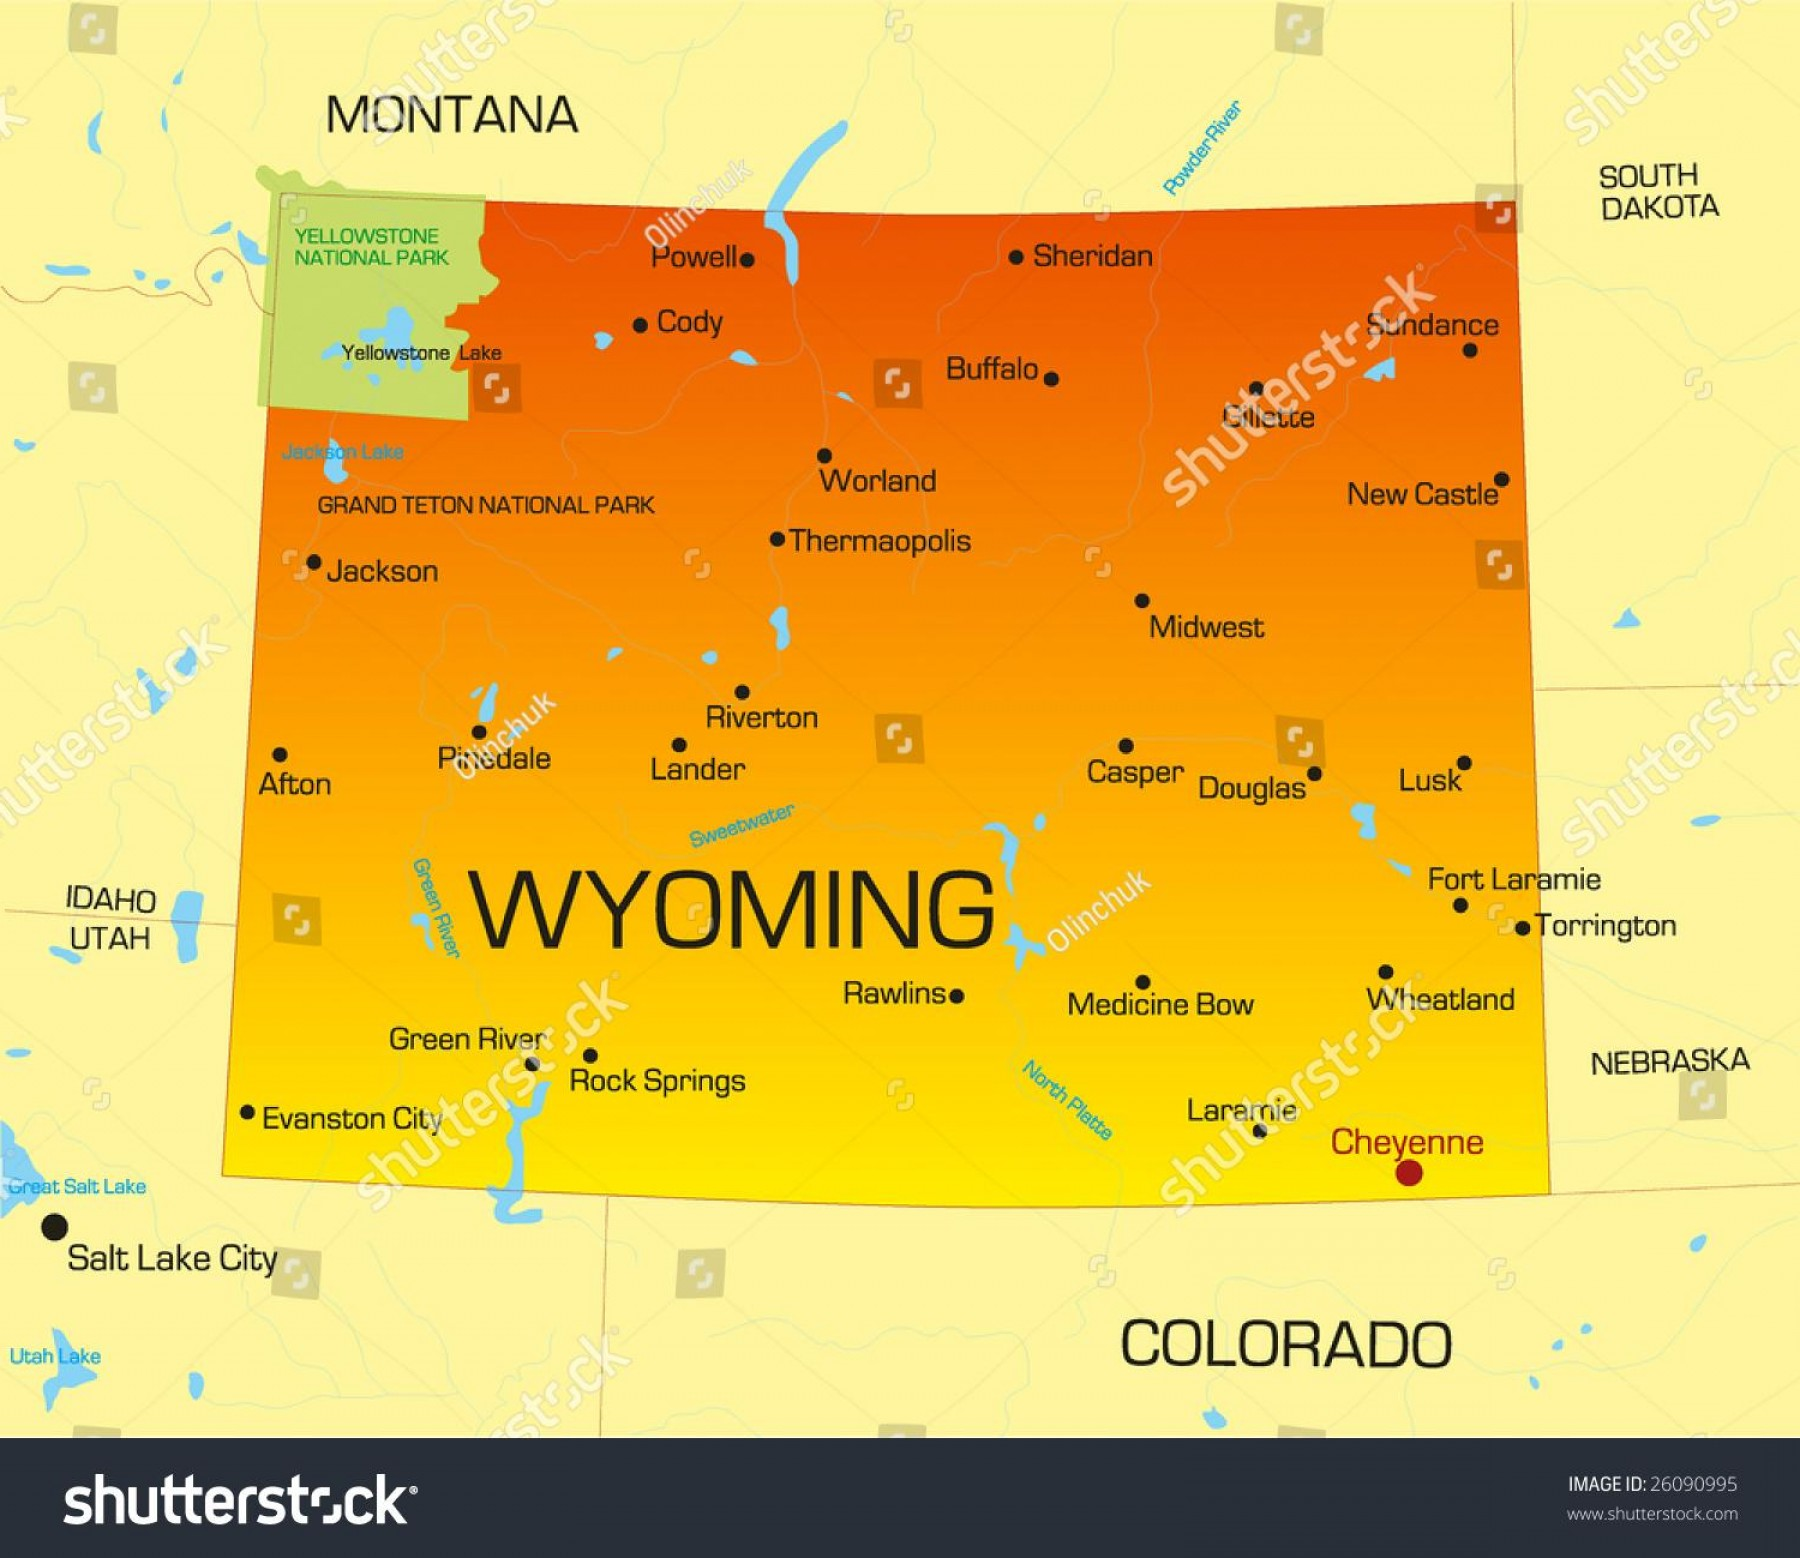 Colorado State Vector Maps: Top Wyoming Mi Map Vector Library